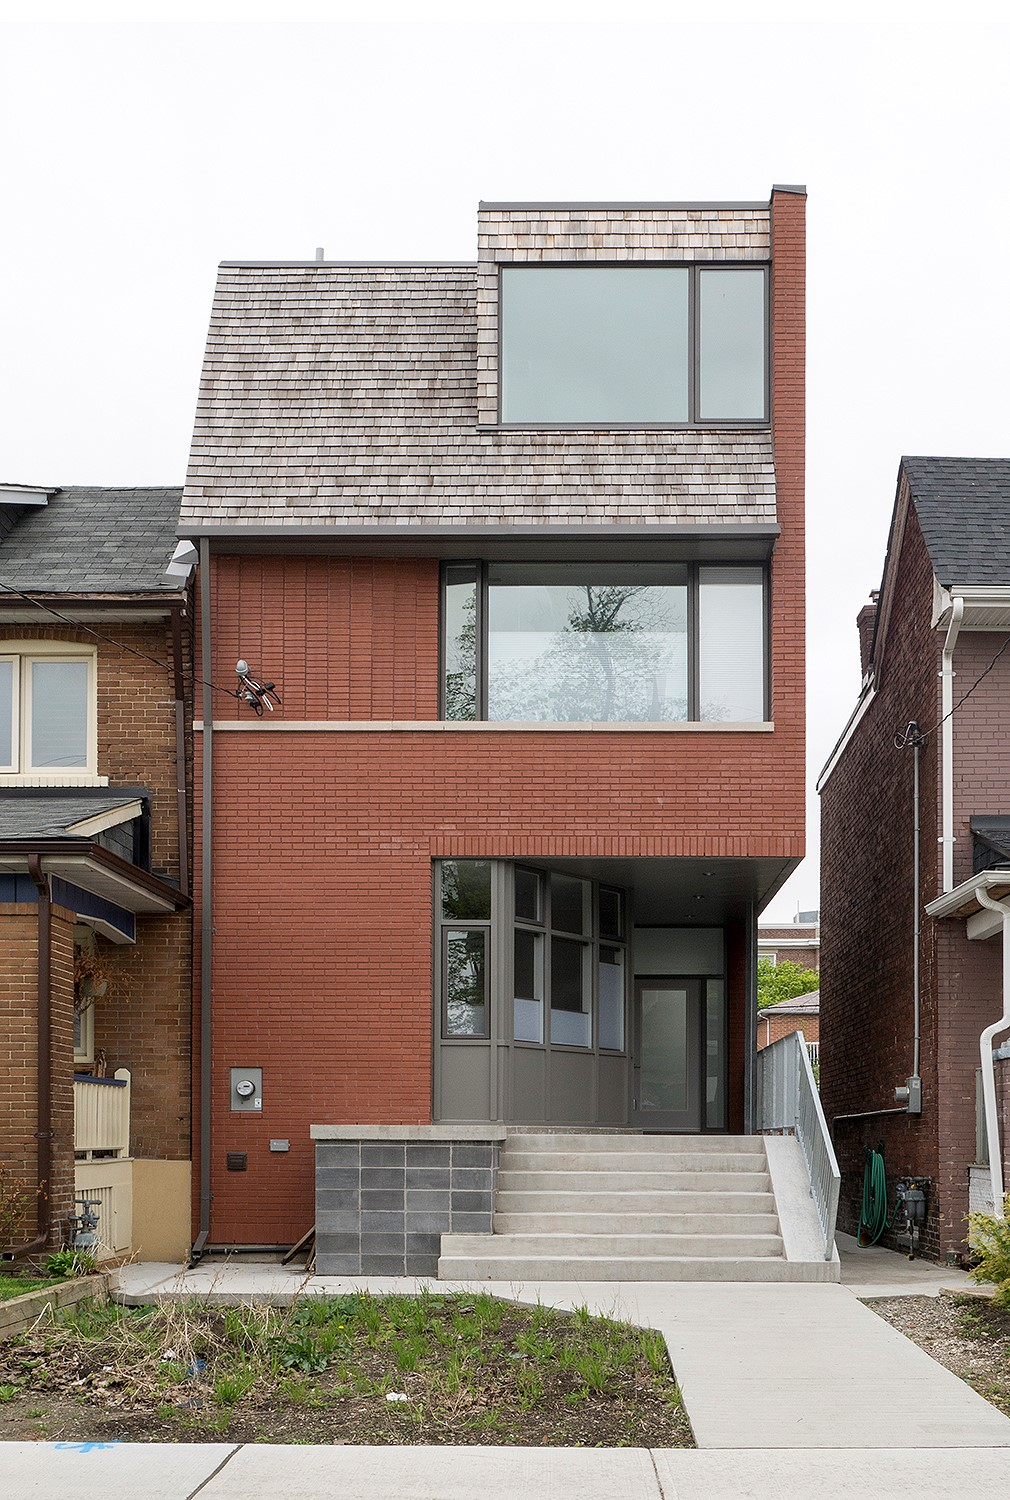 Amazing homes in toronto open their doors for second for Modern house design toronto